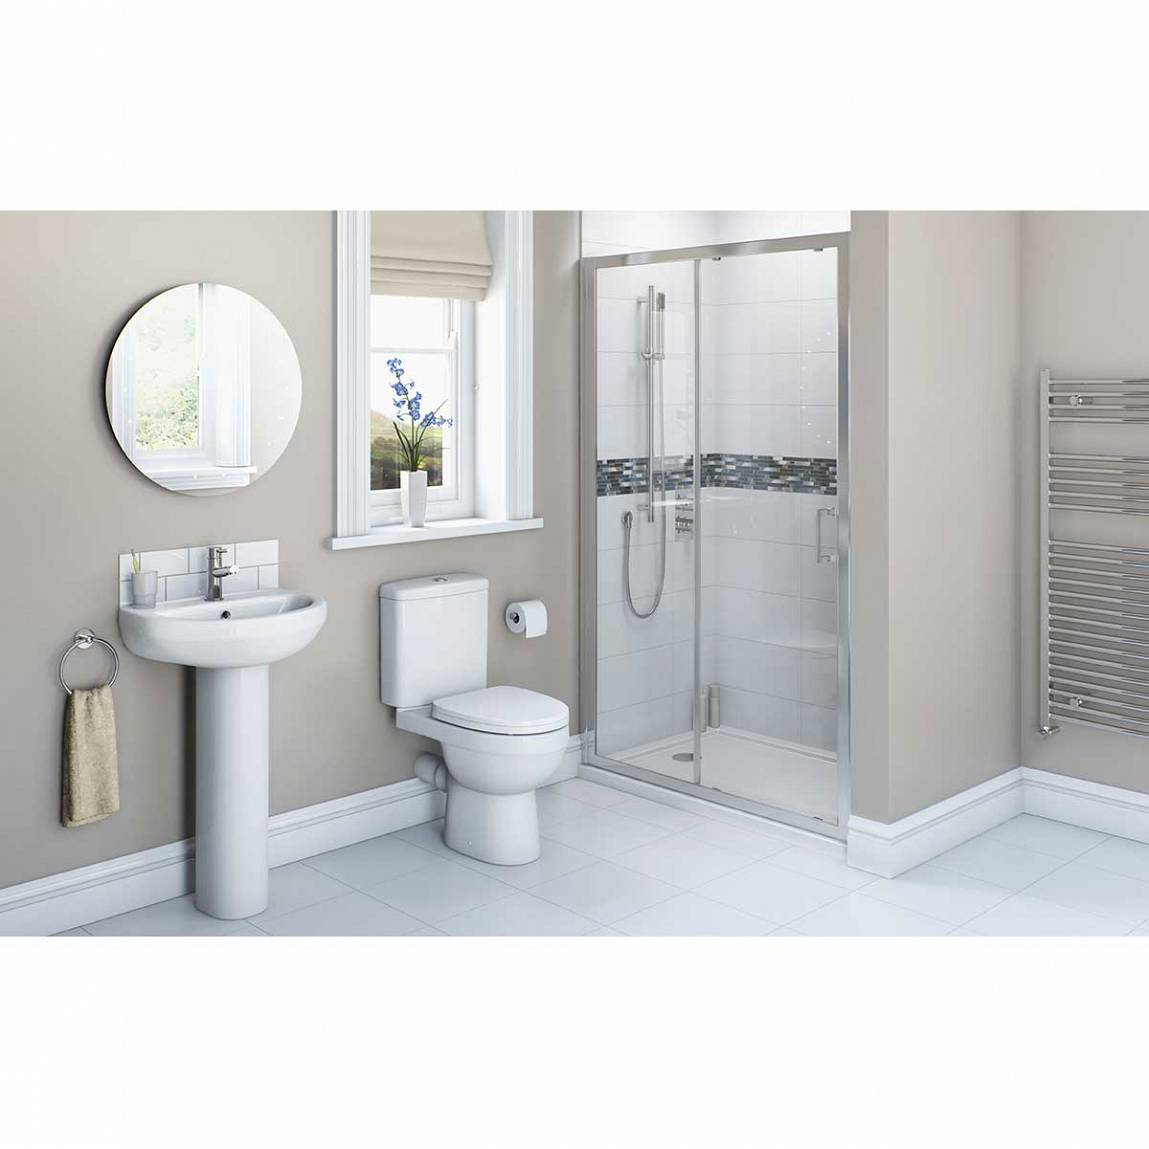 Image of Energy Bathroom set with Sliding Shower Door 1000